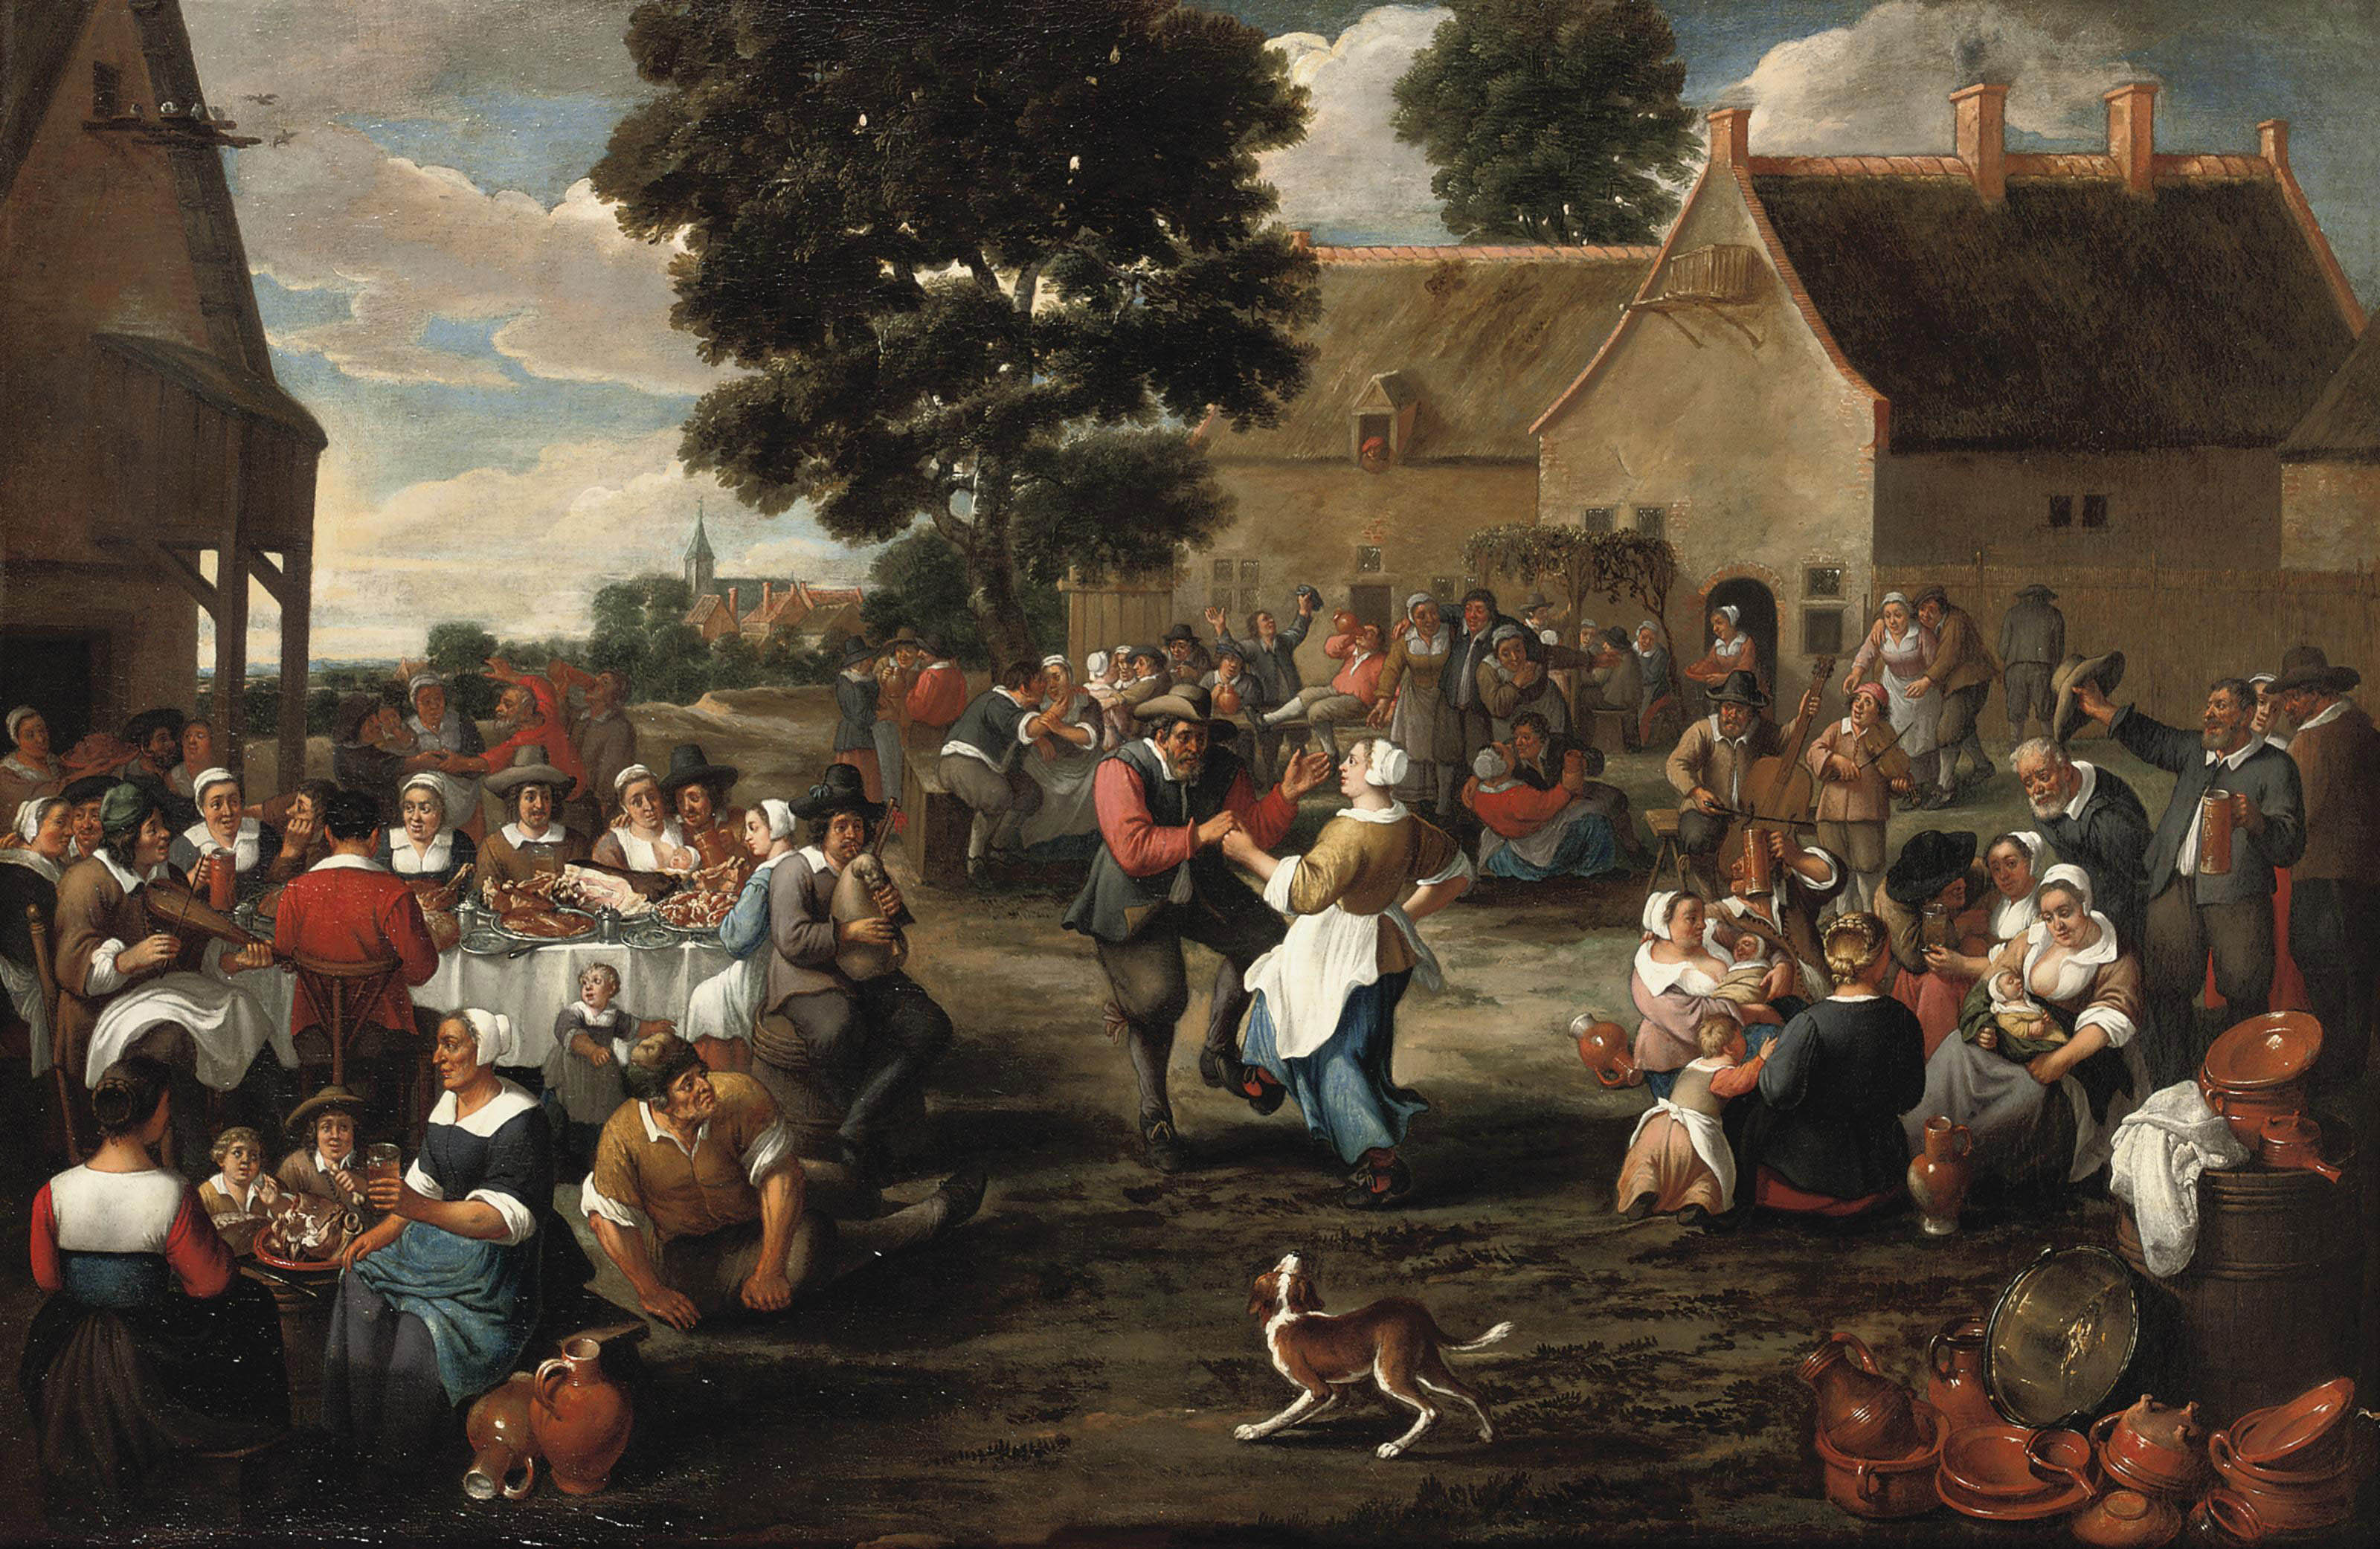 A peasant's feast in the village square